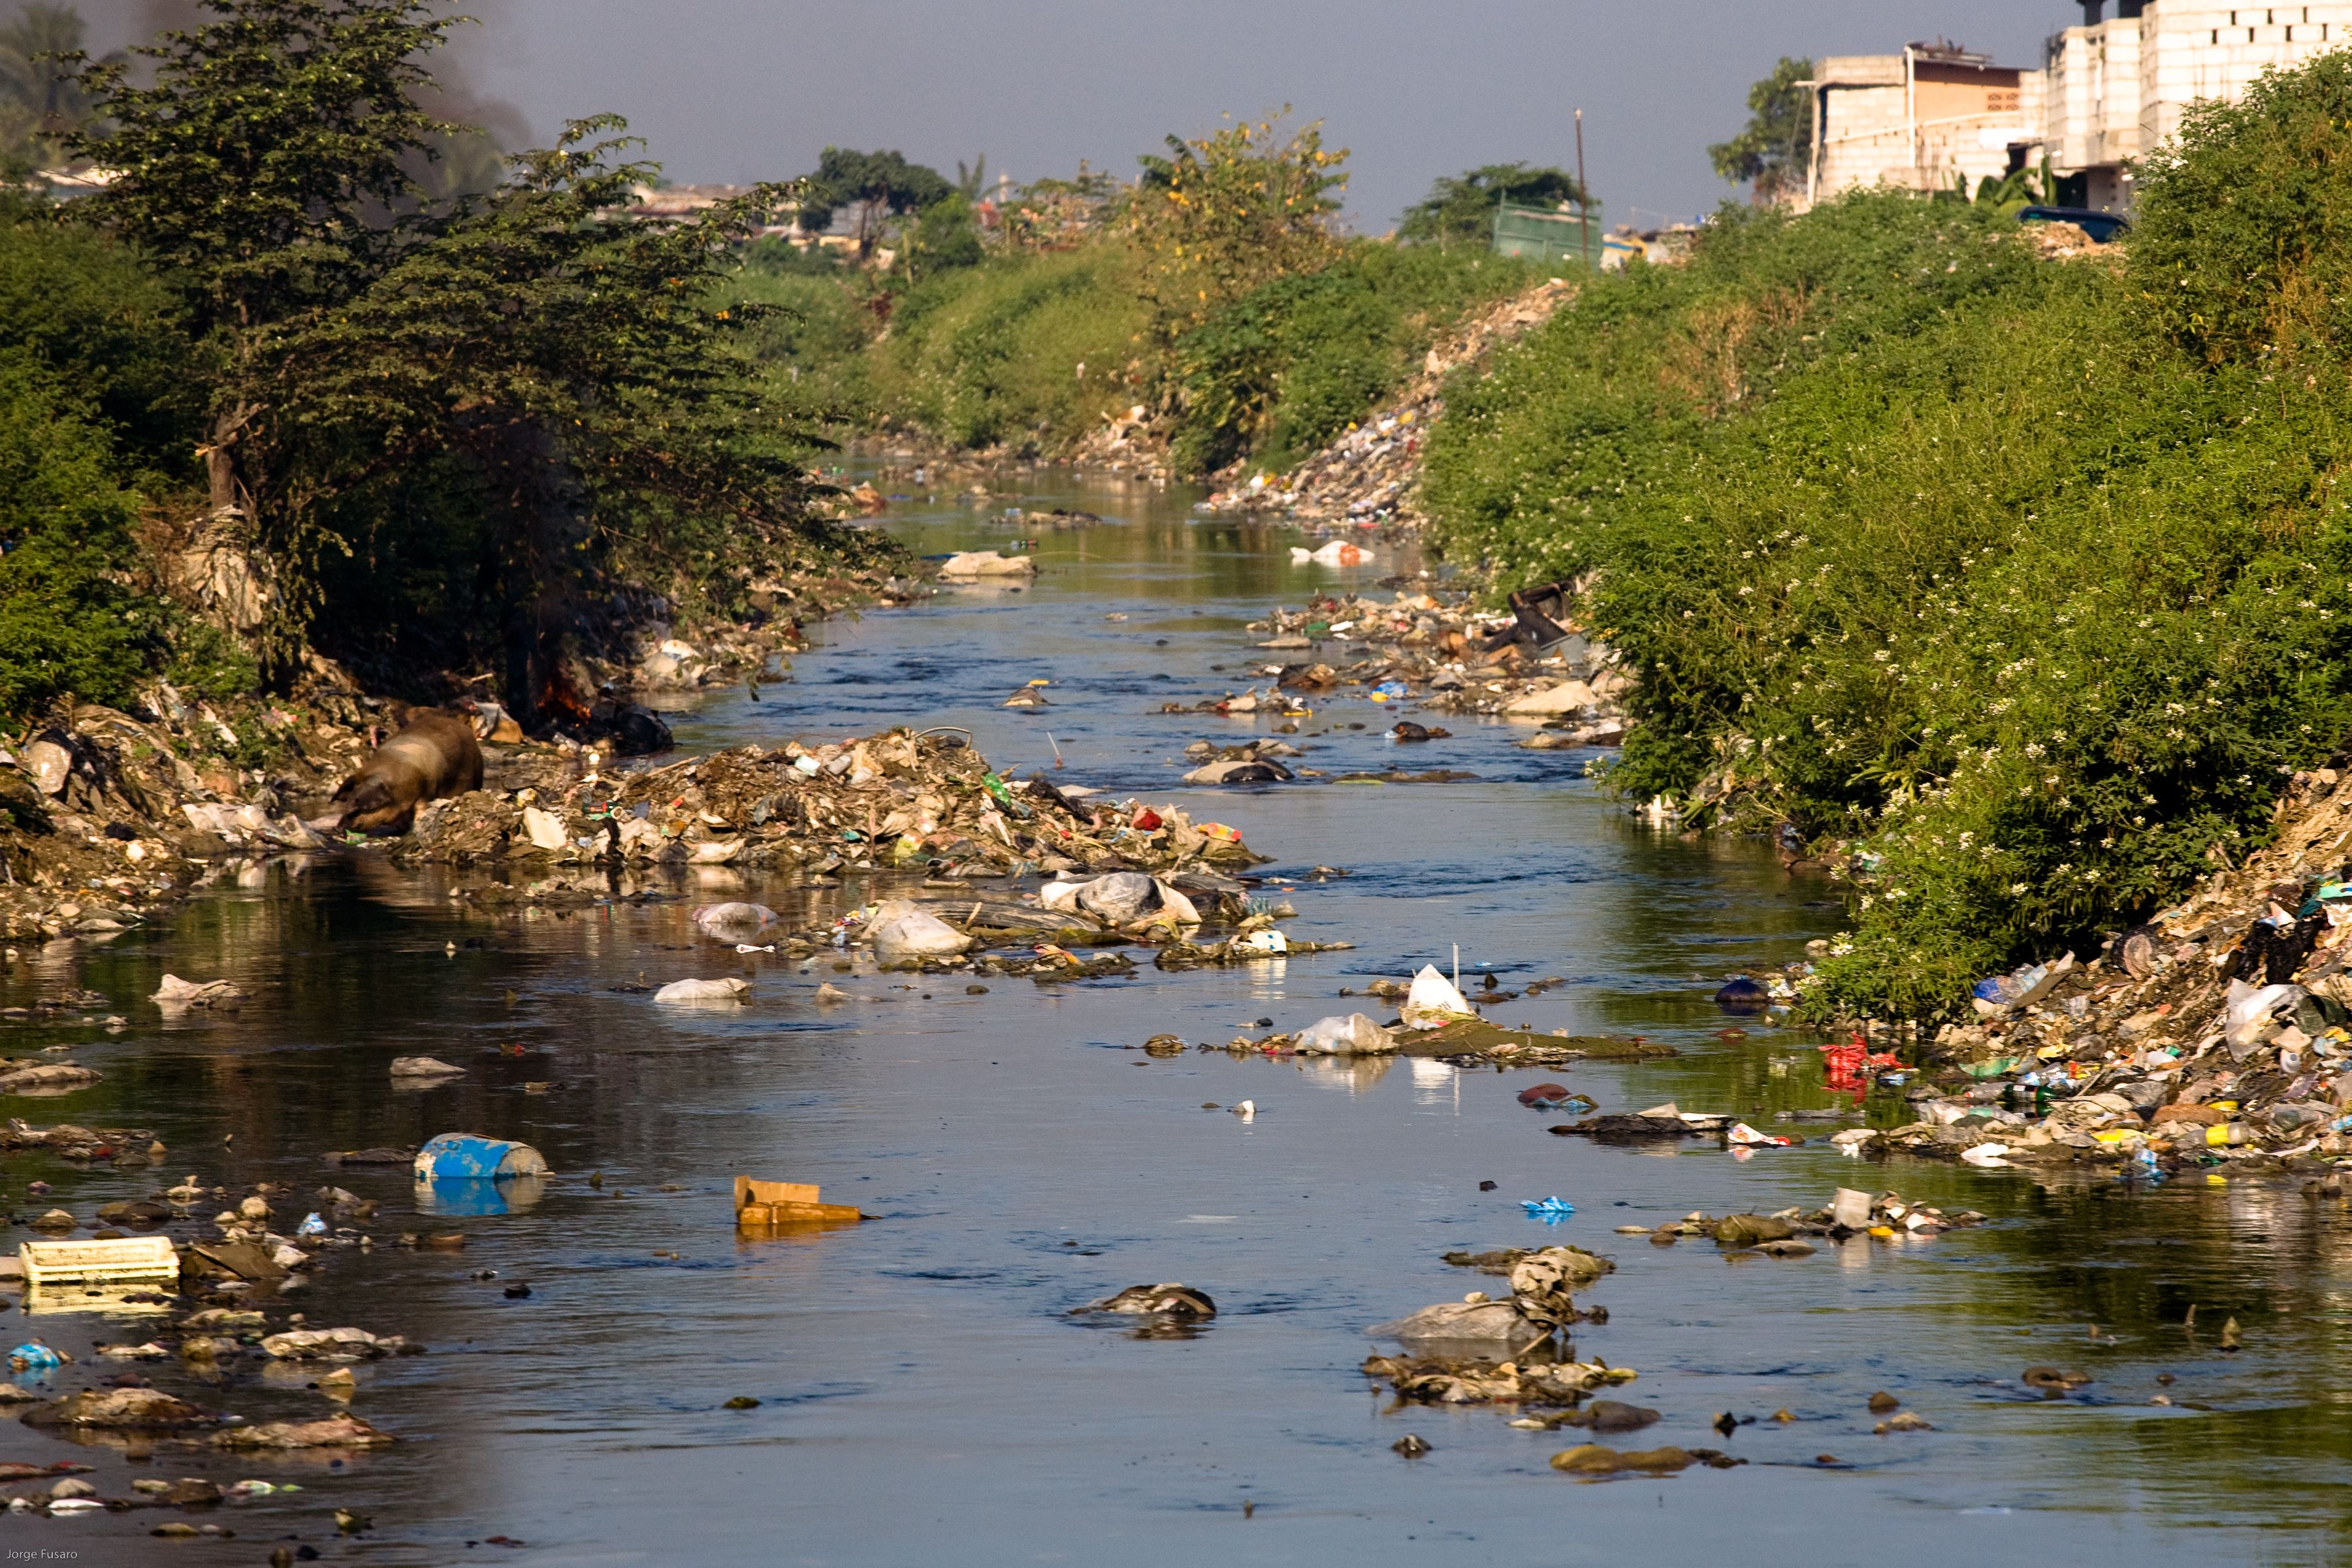 Water Pollution Due To Solid Wastes In The Greater